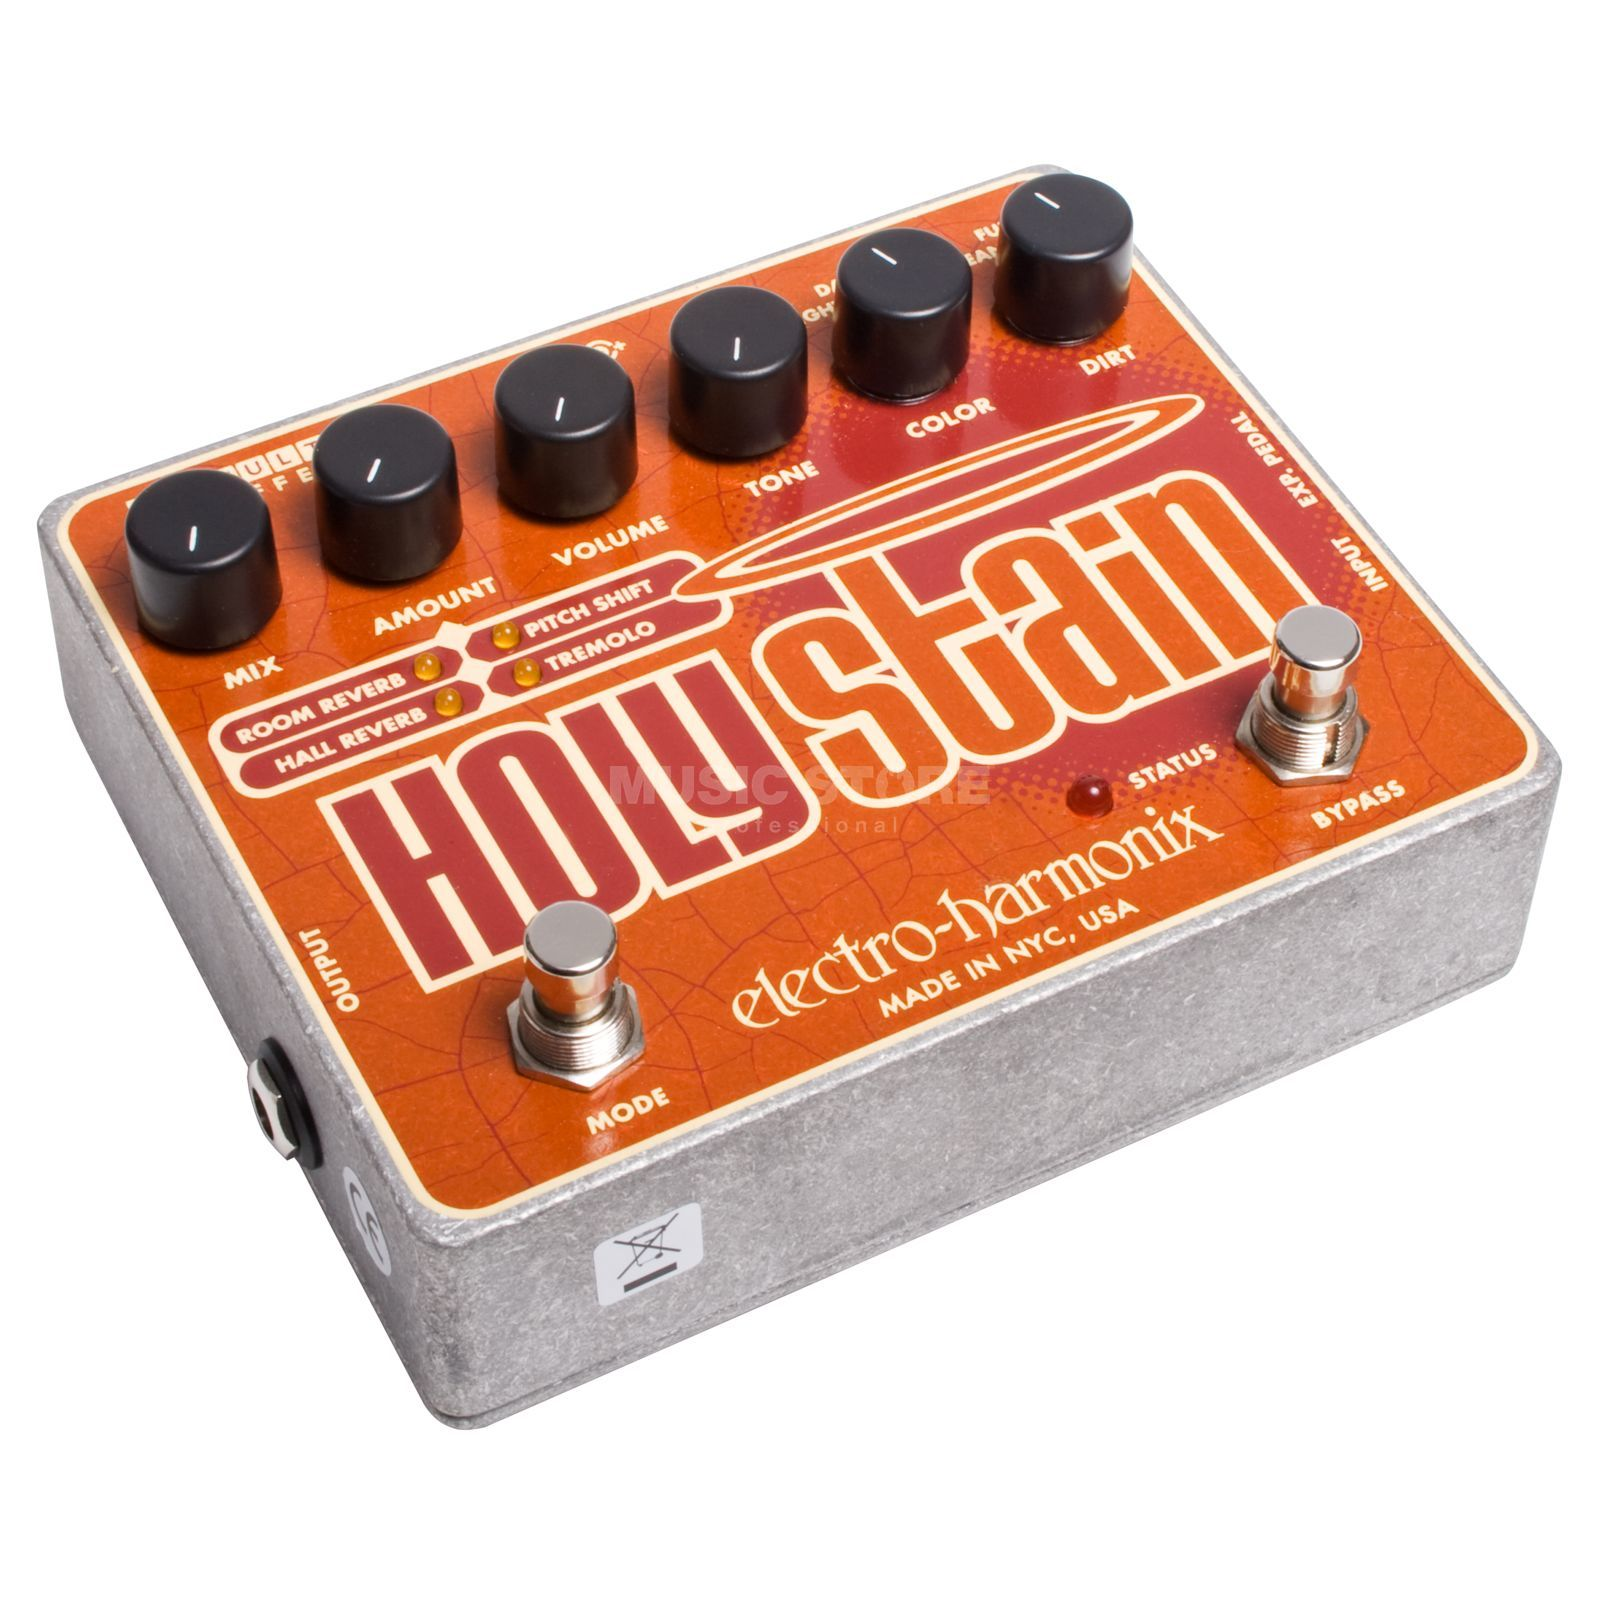 Electro Harmonix Holy Stain Guitar Multi Effect s Pedal   Produktbillede